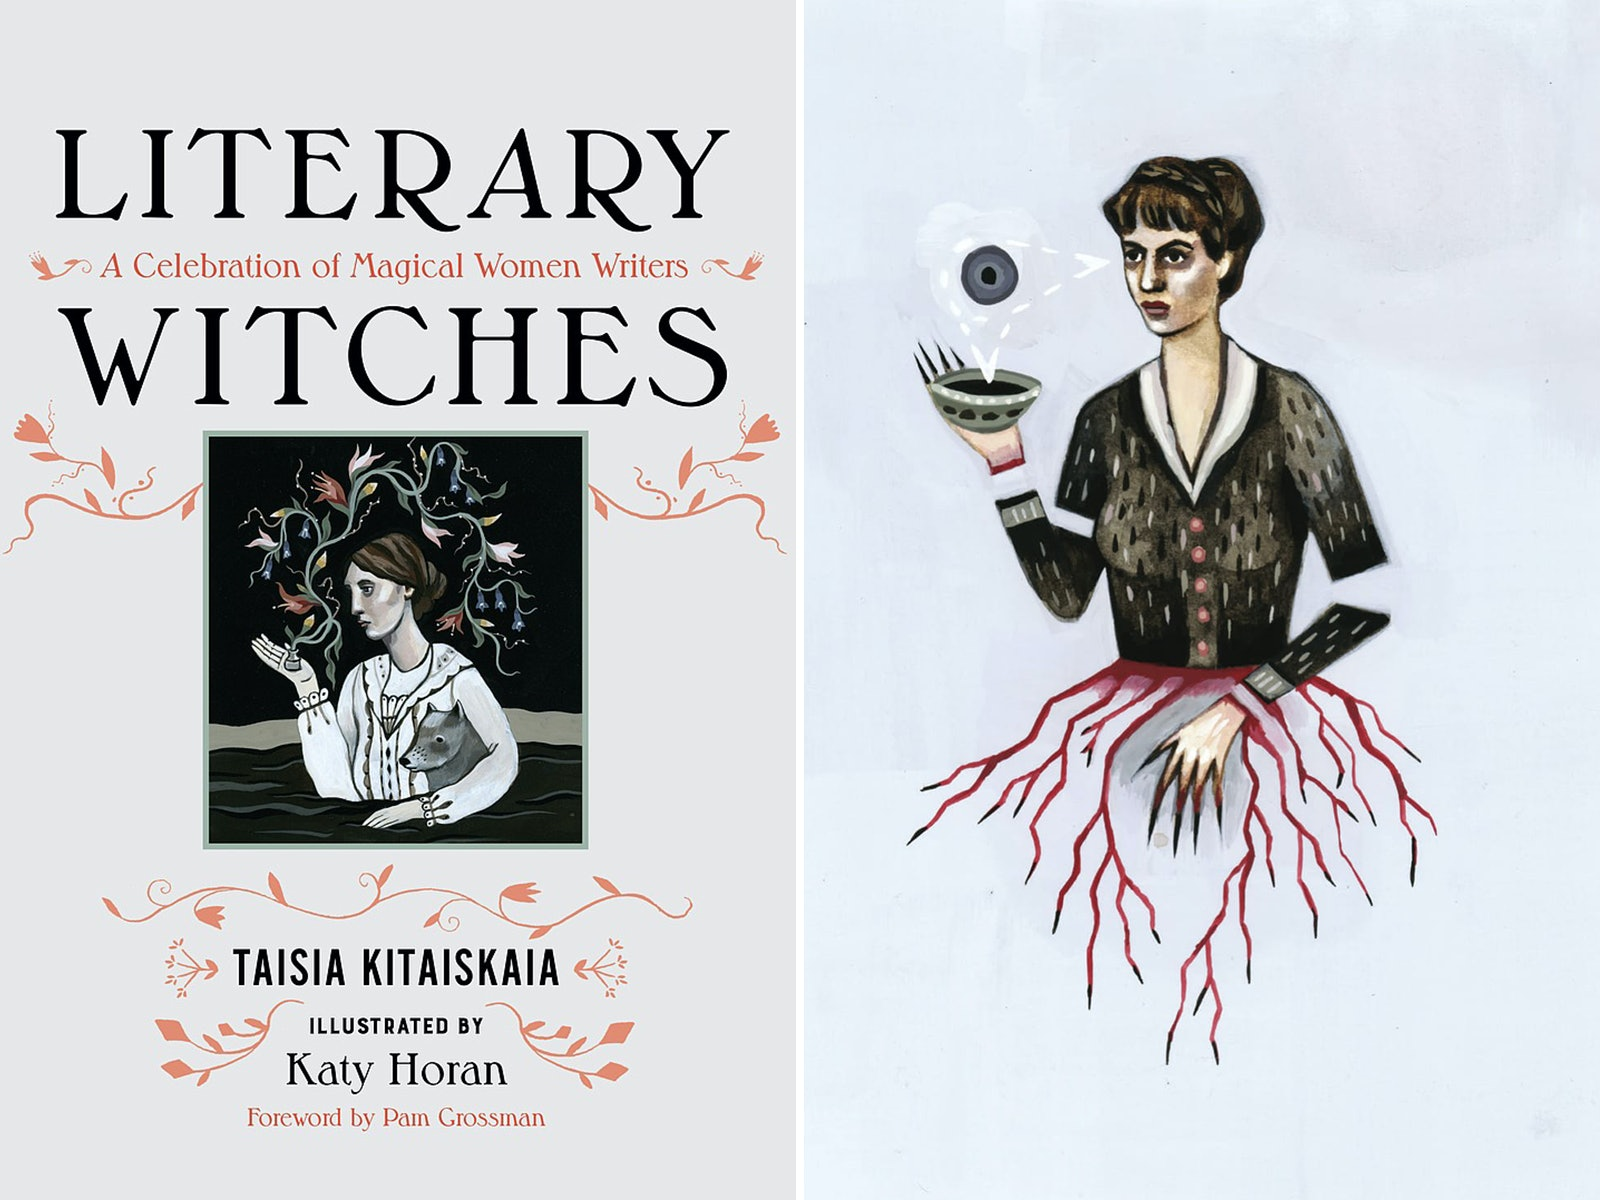 A Celebration of Magical Women Writers Literary Witches